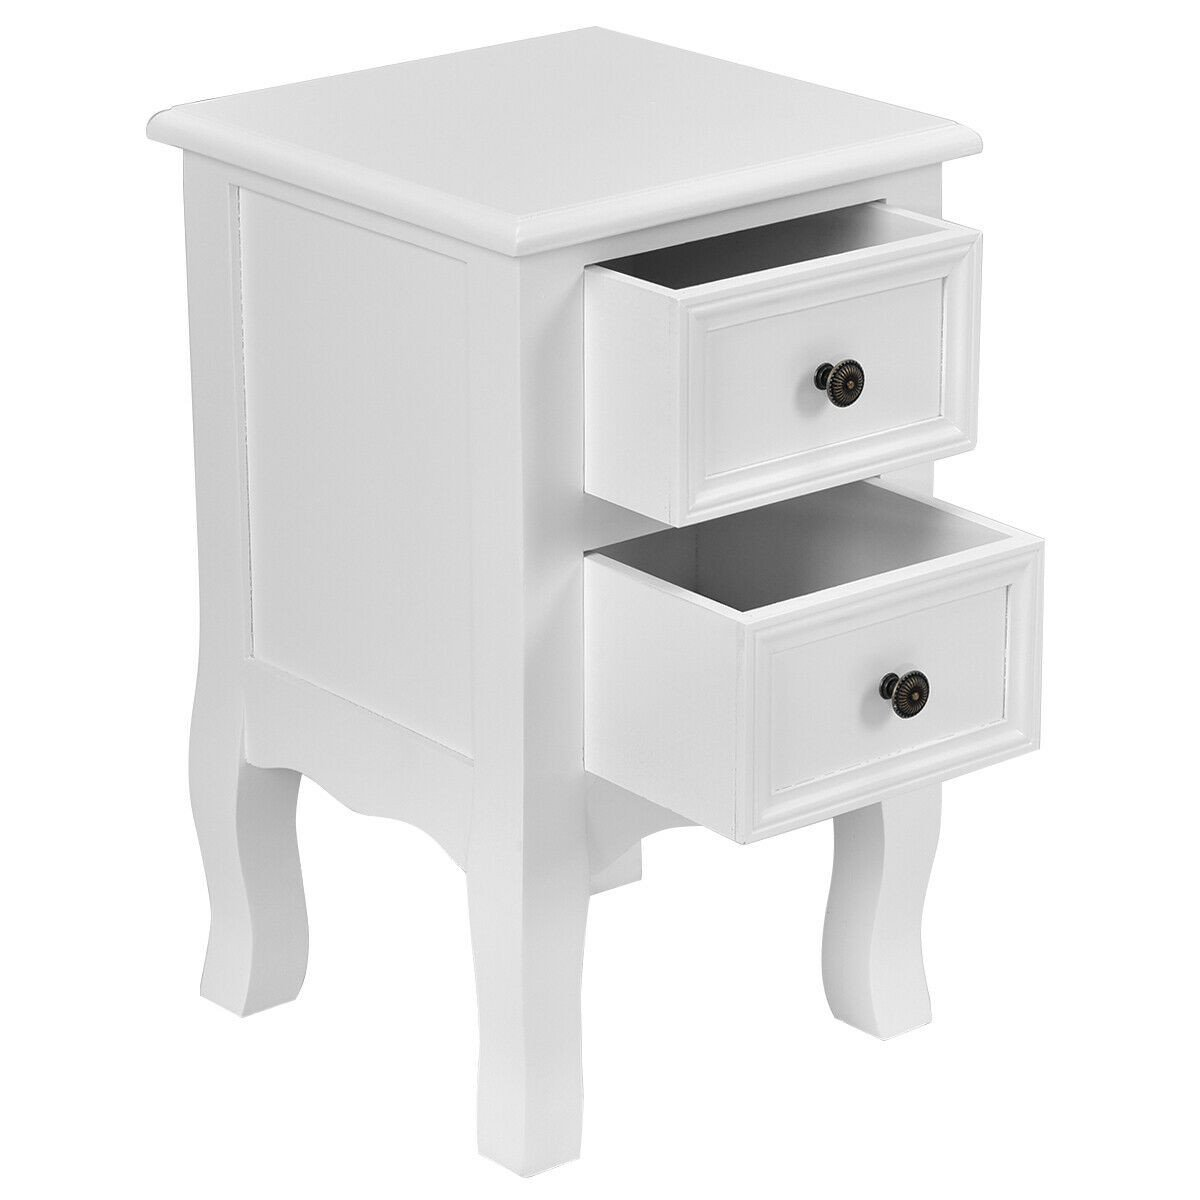 White Bedroom End Tables Lovely White Night Stand for Bedrooms W 2 Storage Drawers Wood End Accent Table